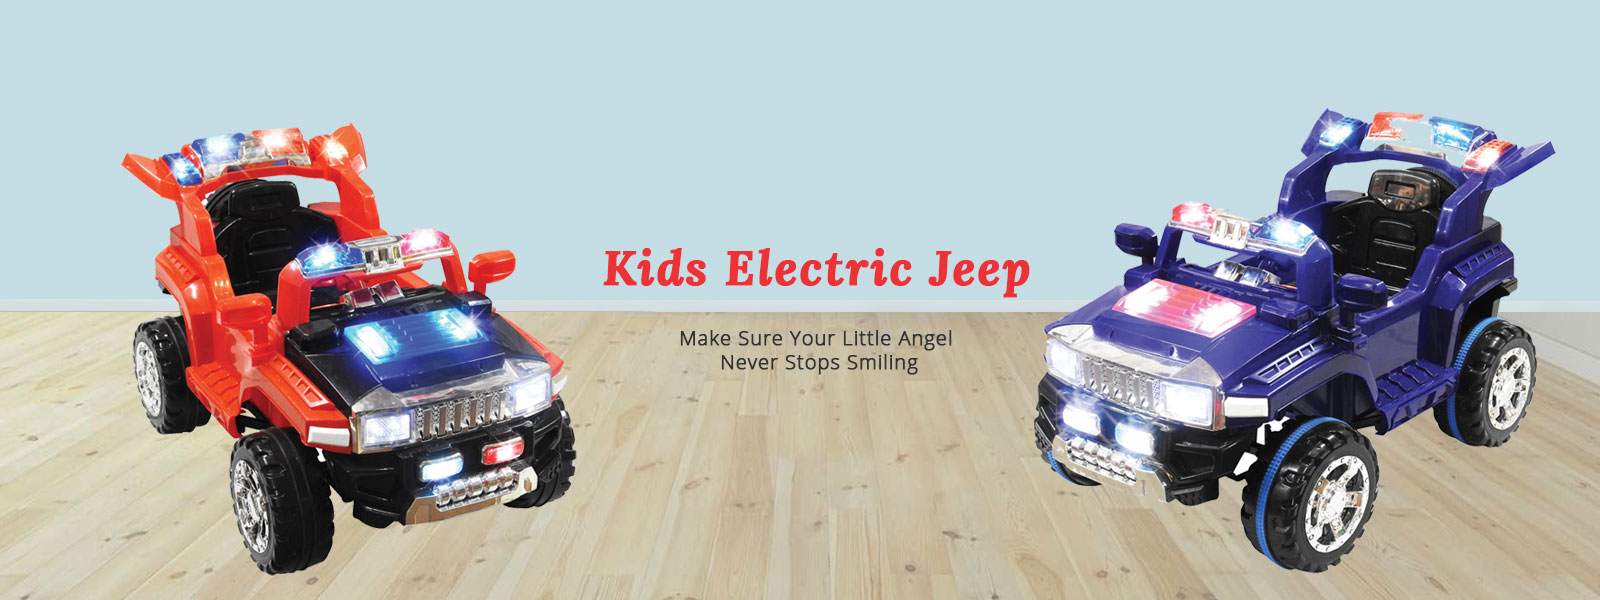 Kids Electric Jeep Manufacturers in Ernakulam